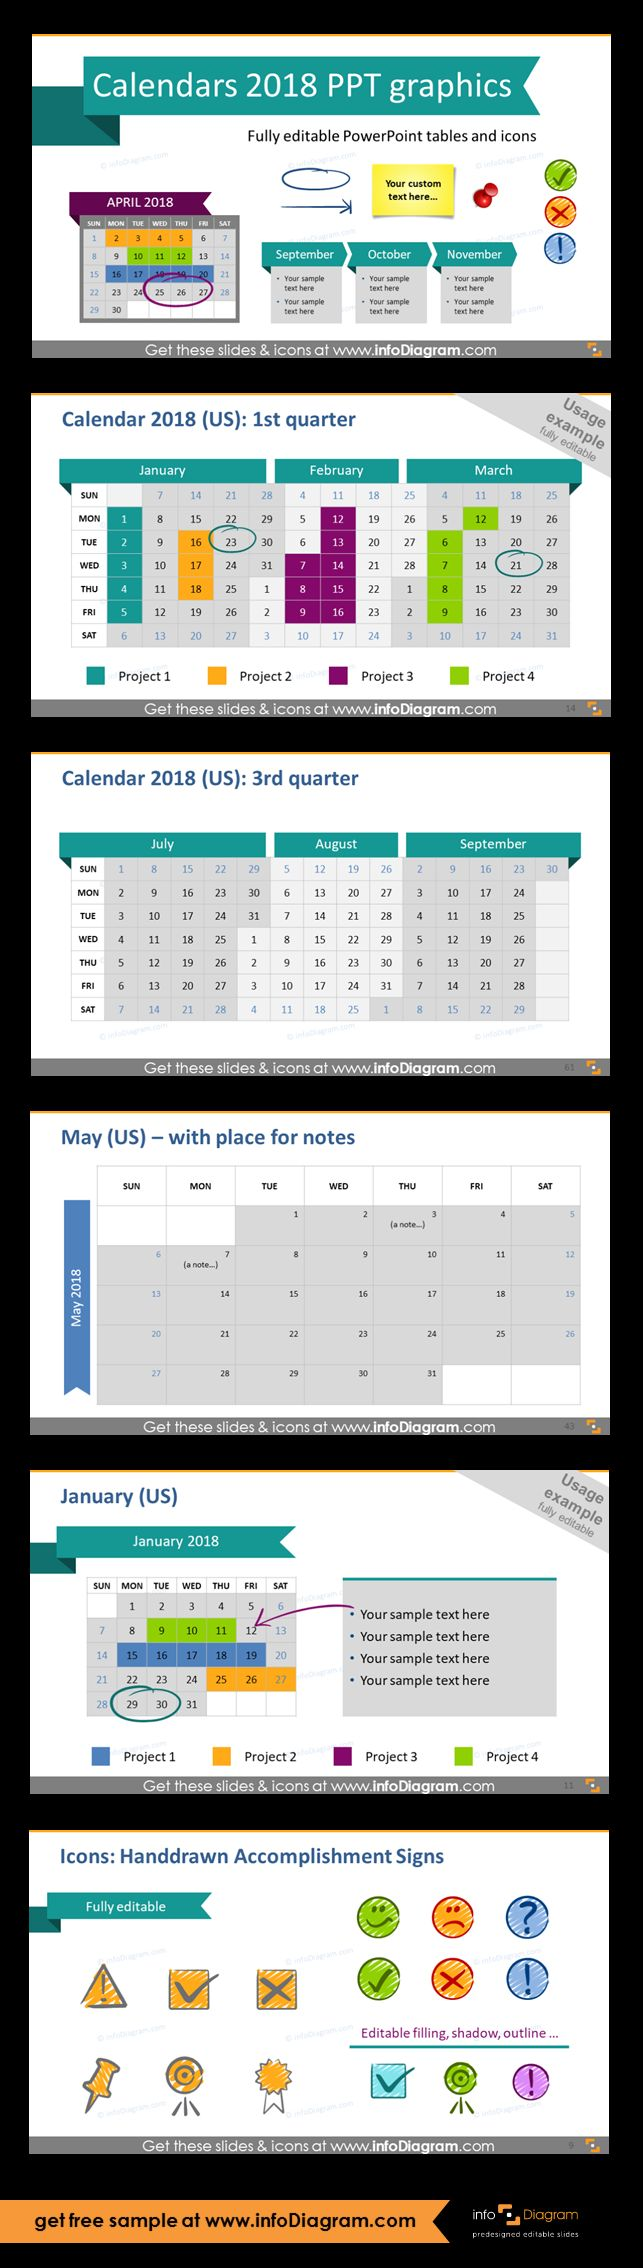 Predesigned 2018 Calendars and Timelines graphics editable in PowerPoint. Fully editable style, size and colors. Quarter calendar templates, one month calendar with place for notes and description, handdrawn accomplishment signs.